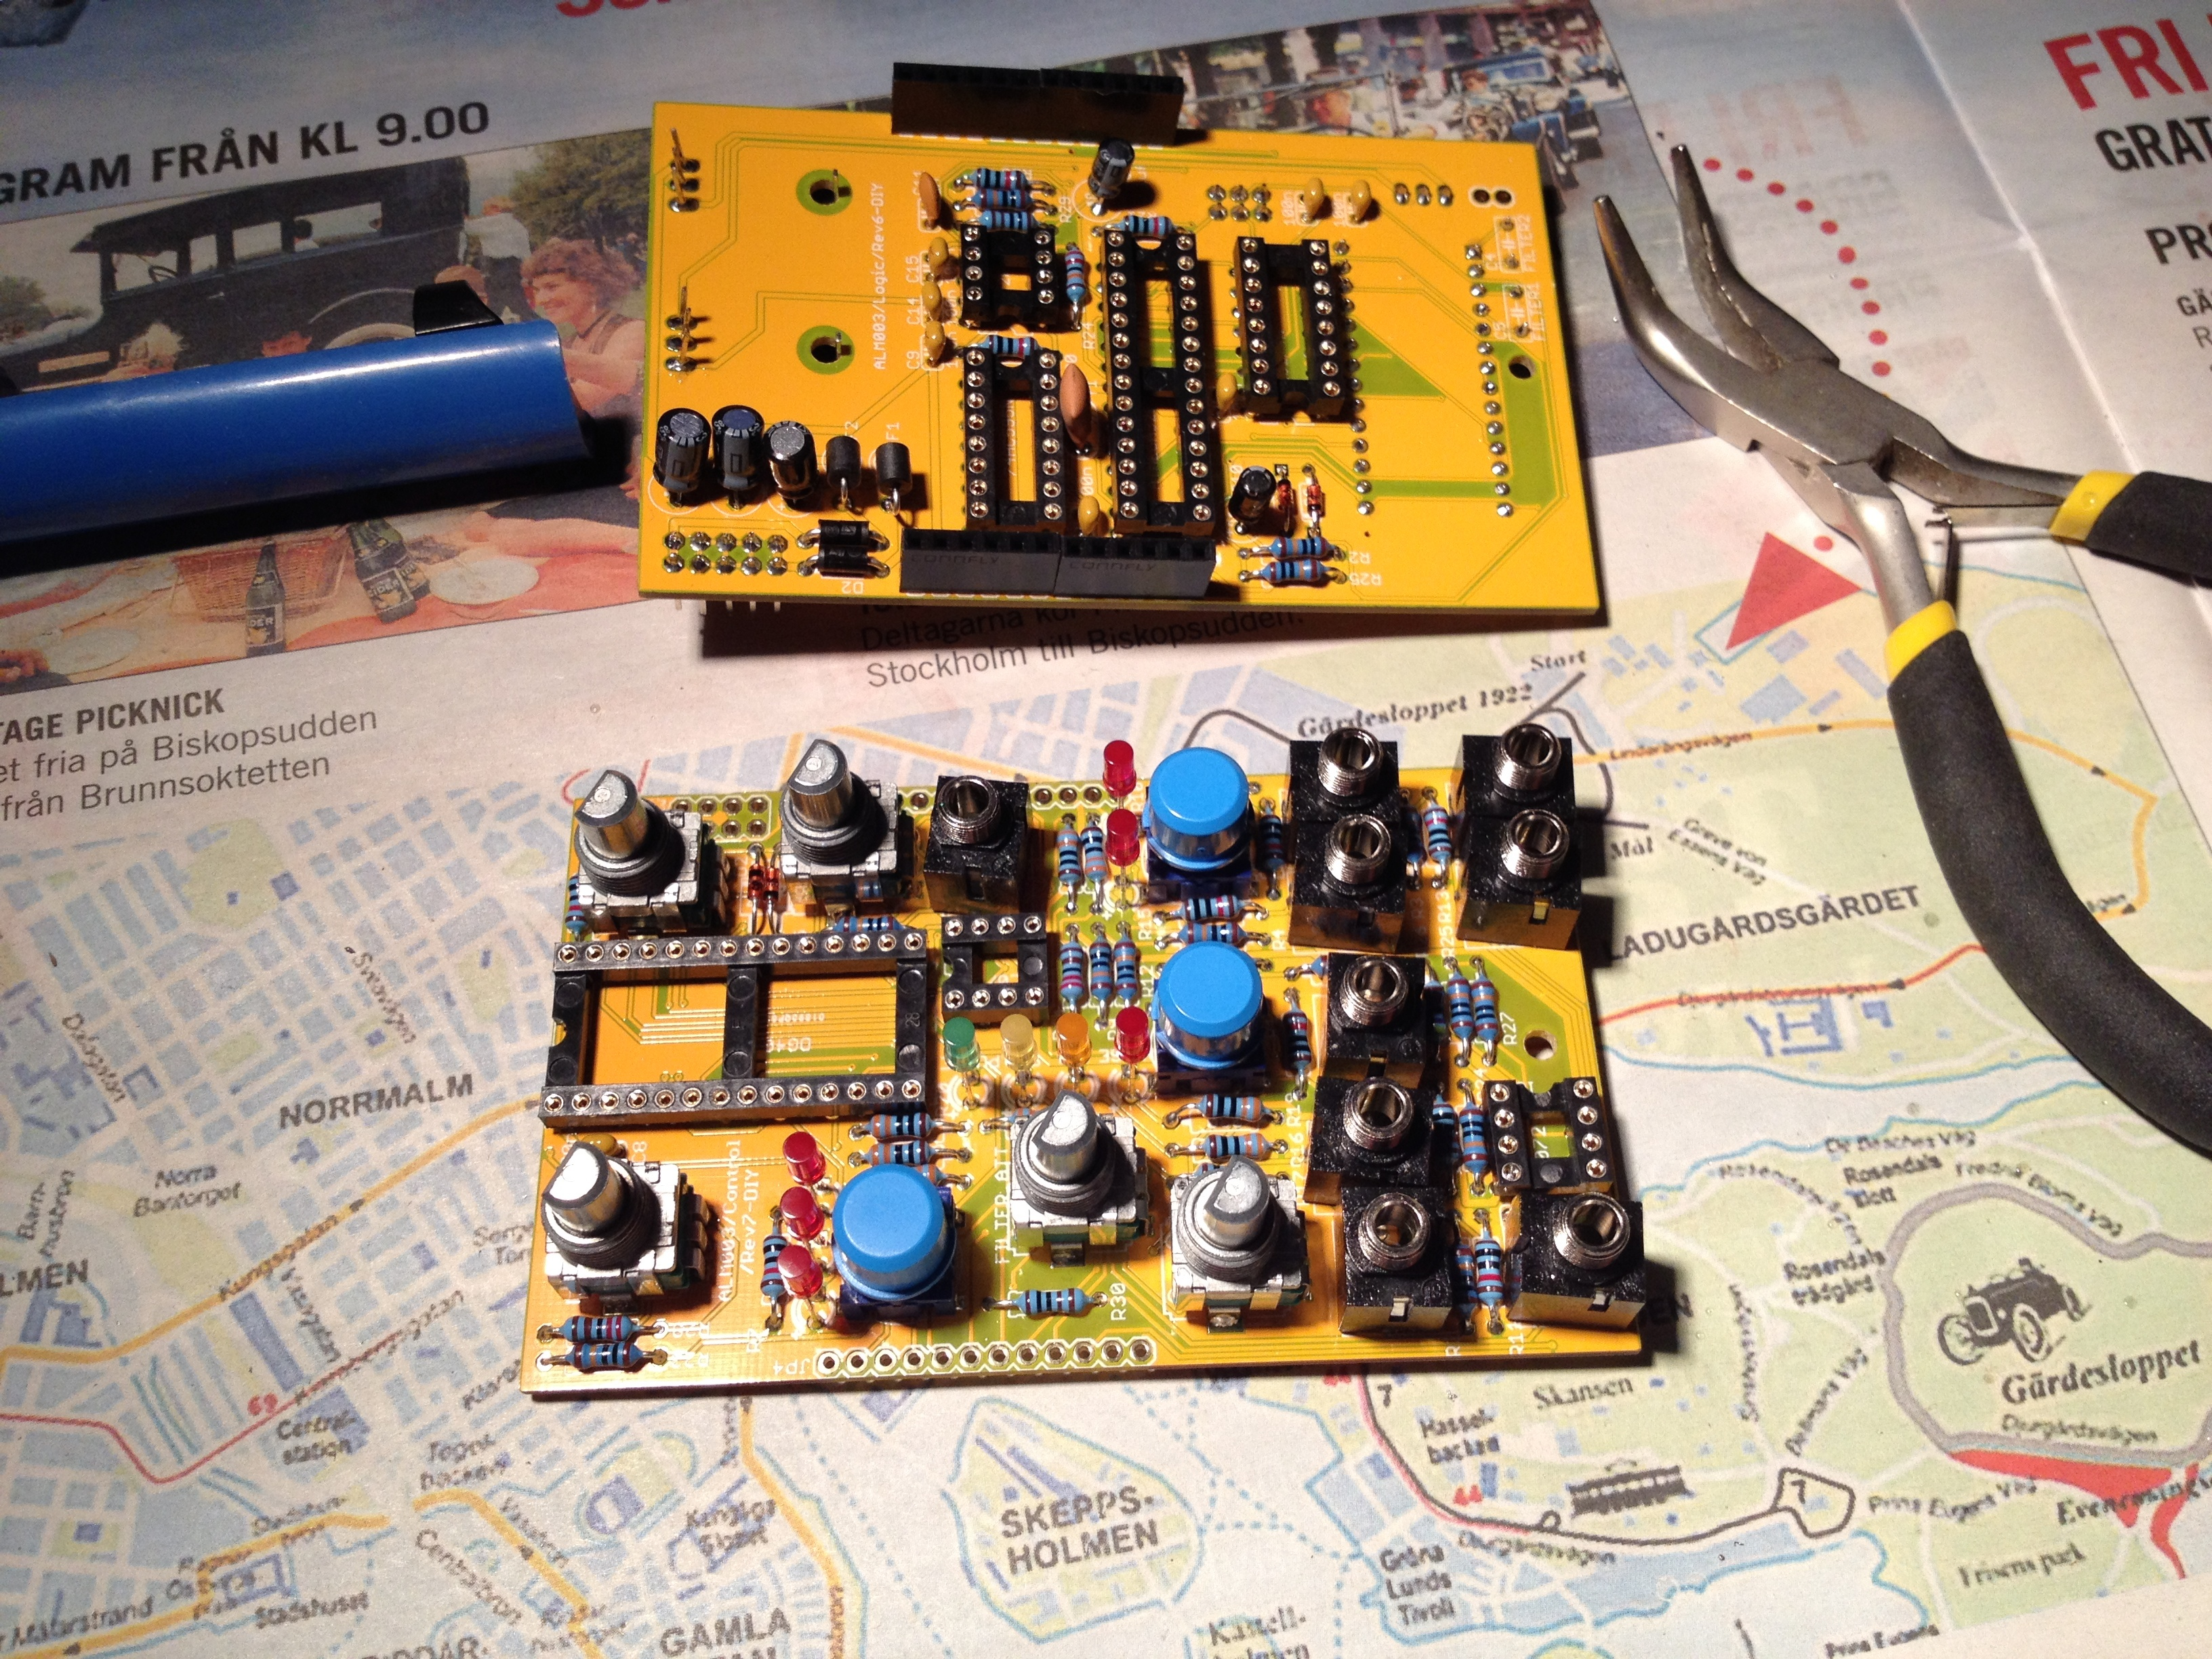 Almost done. Mating the two PCBs should be no trouble at all really...